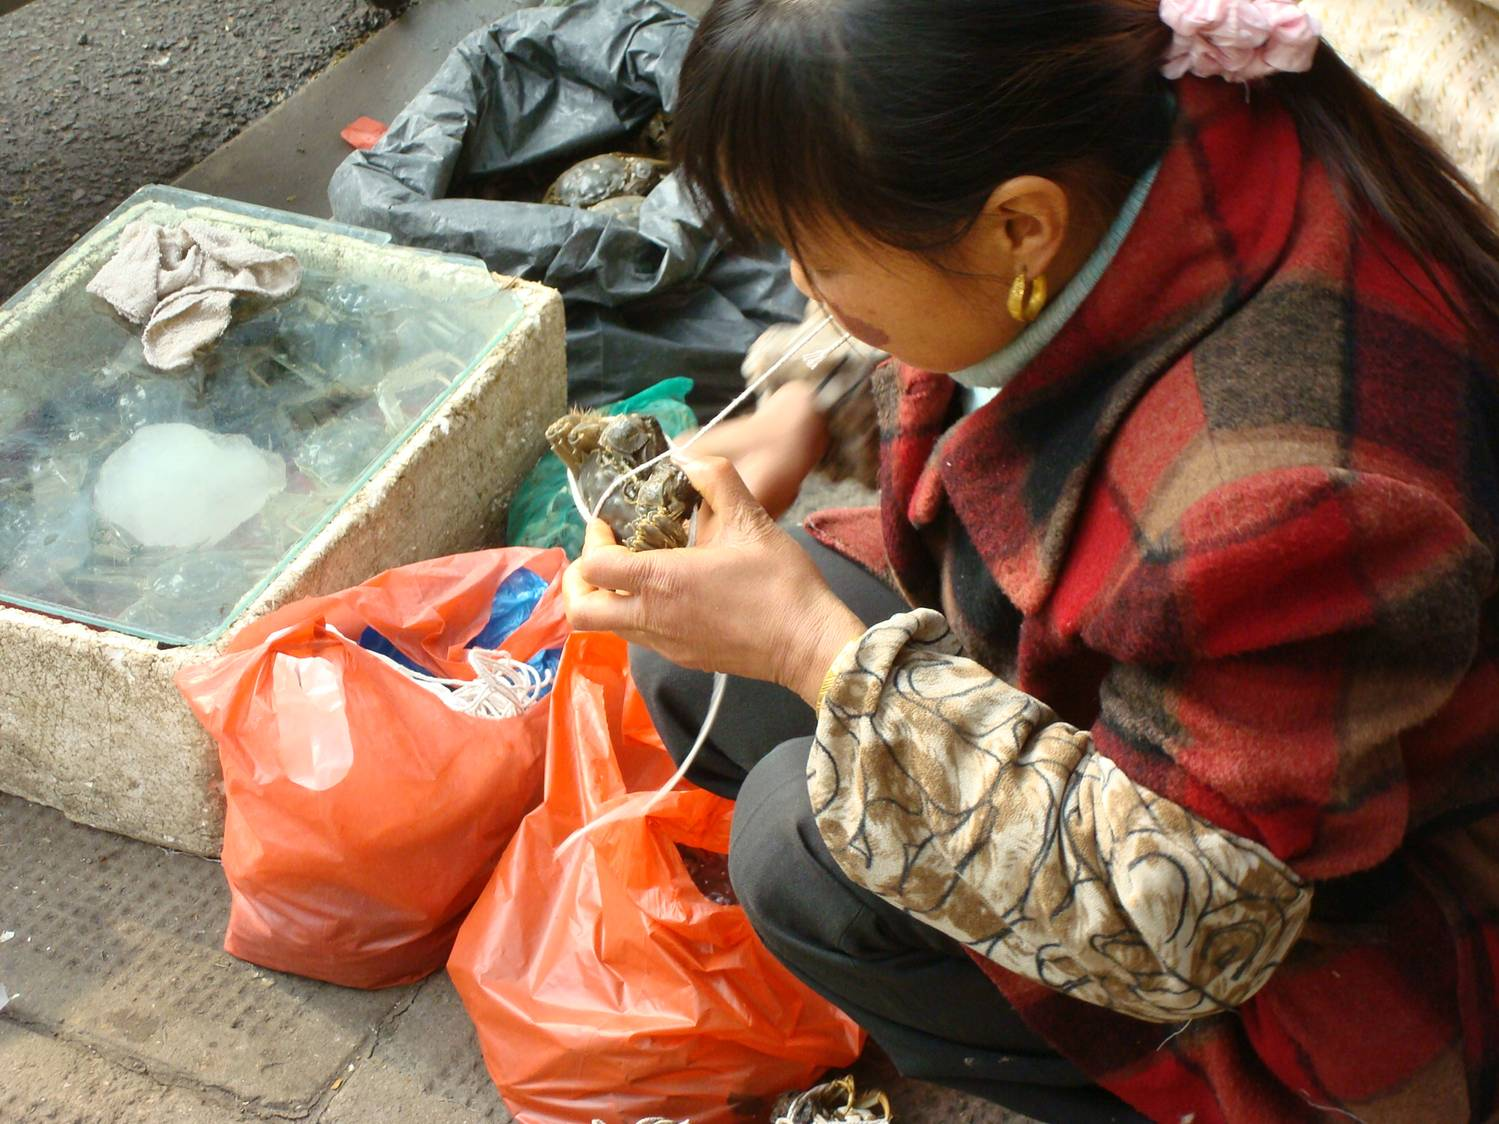 tying live crabs on the streets of Shanghai